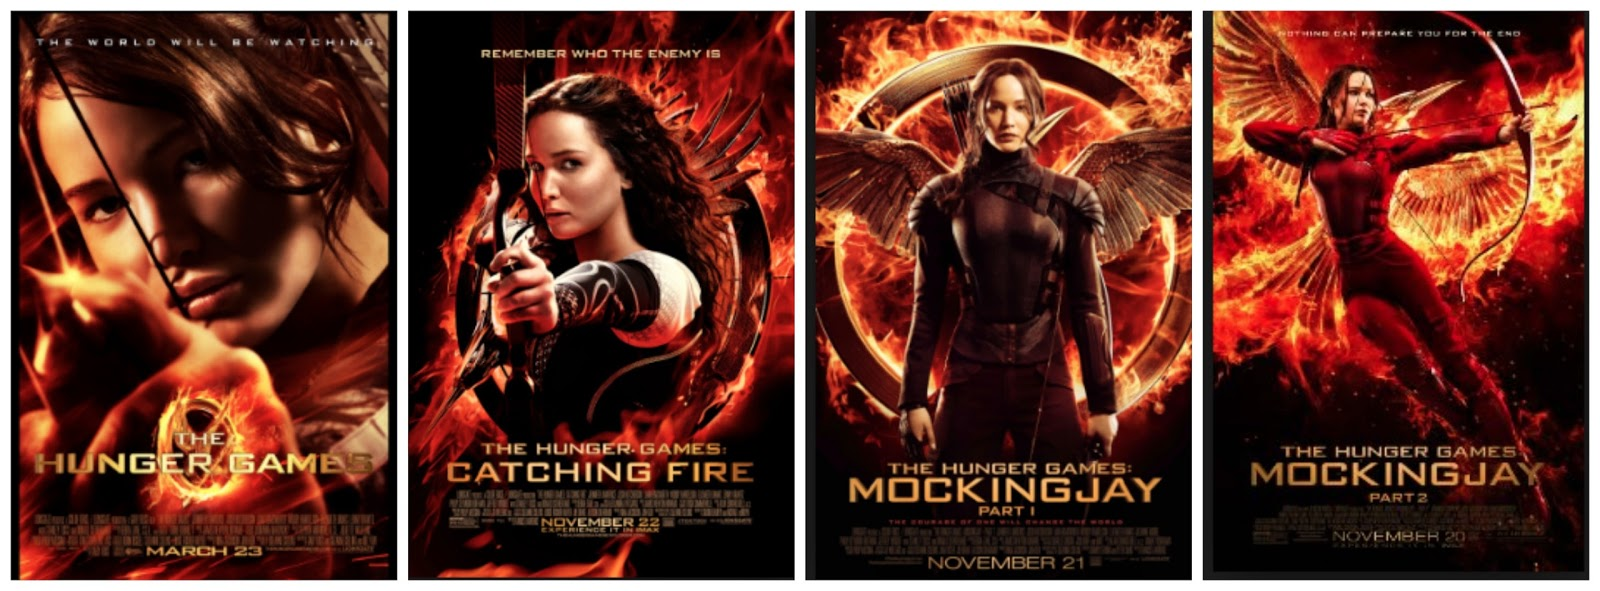 The four theatrical movie adaptation posters side-by-side each depicting the protagonist holding a bow and arrow while surrounded by fire.